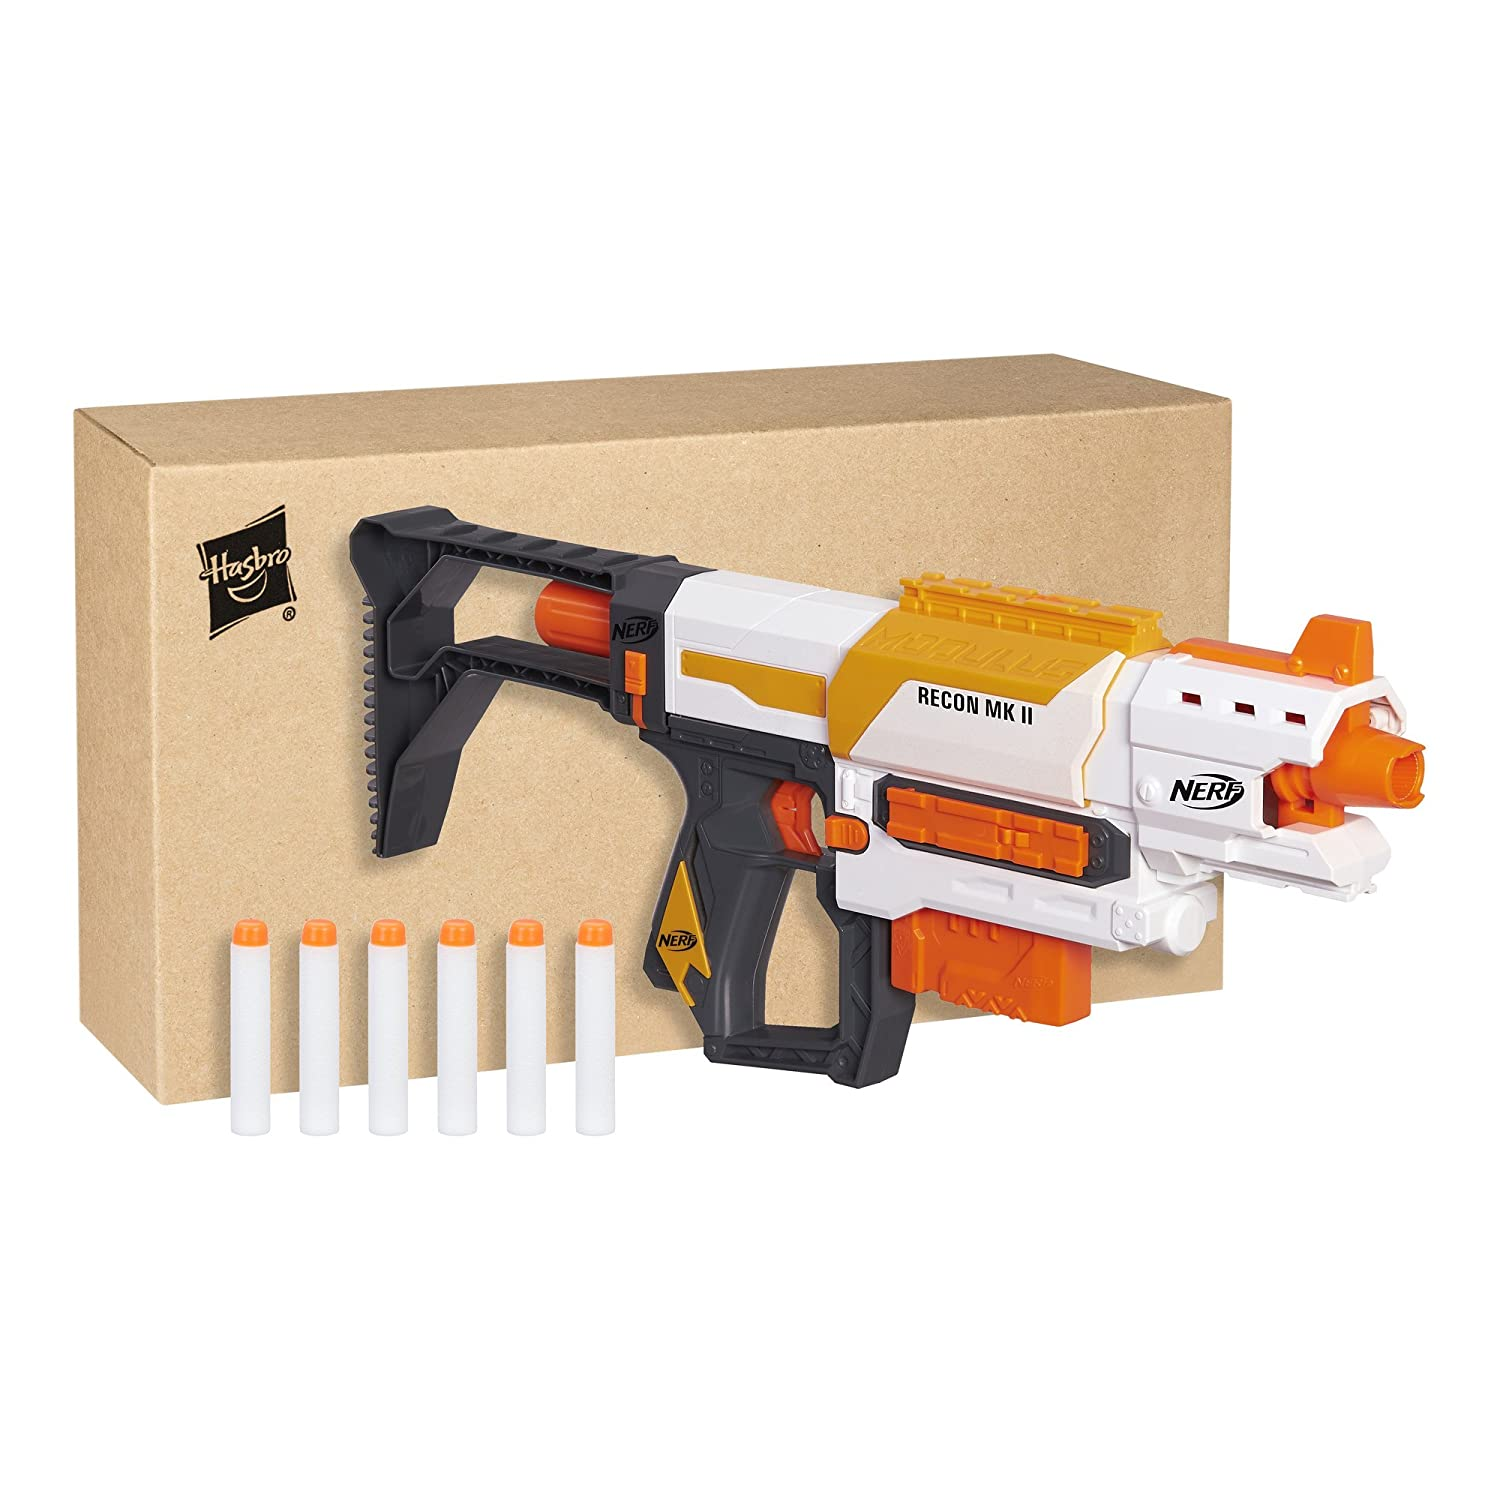 Buy Nerf Modulus Recon Mkii Blaster Toy Gun For Kids - Multi Color Online  at Low Prices in India - Amazon.in